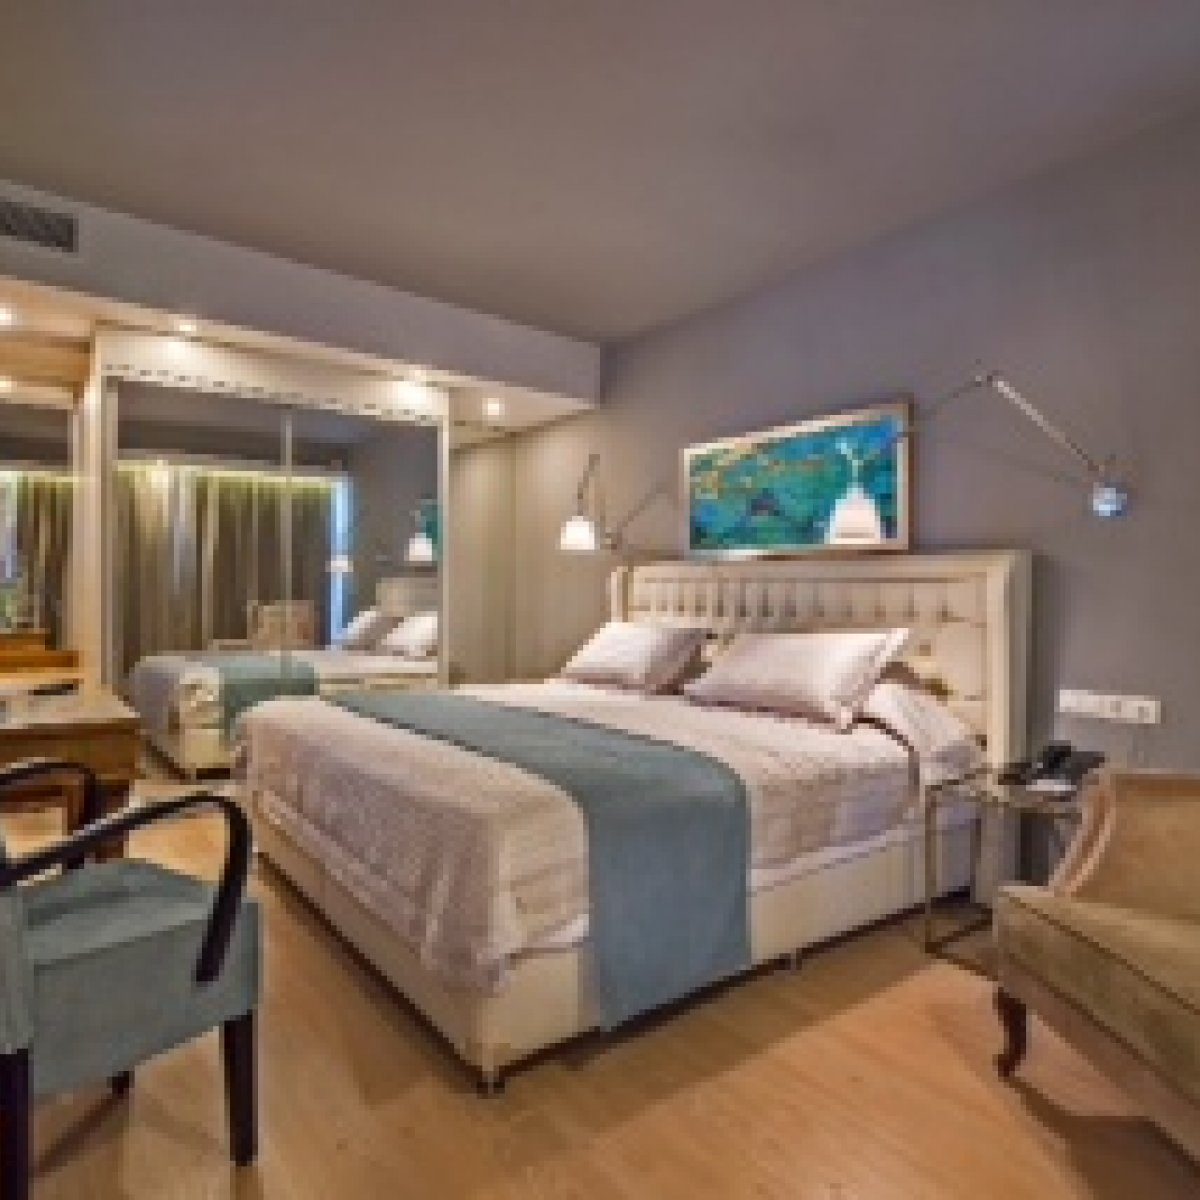 Swell Boutique Hotel - SUPERIOR SUITE WITH PRIVATE POOL